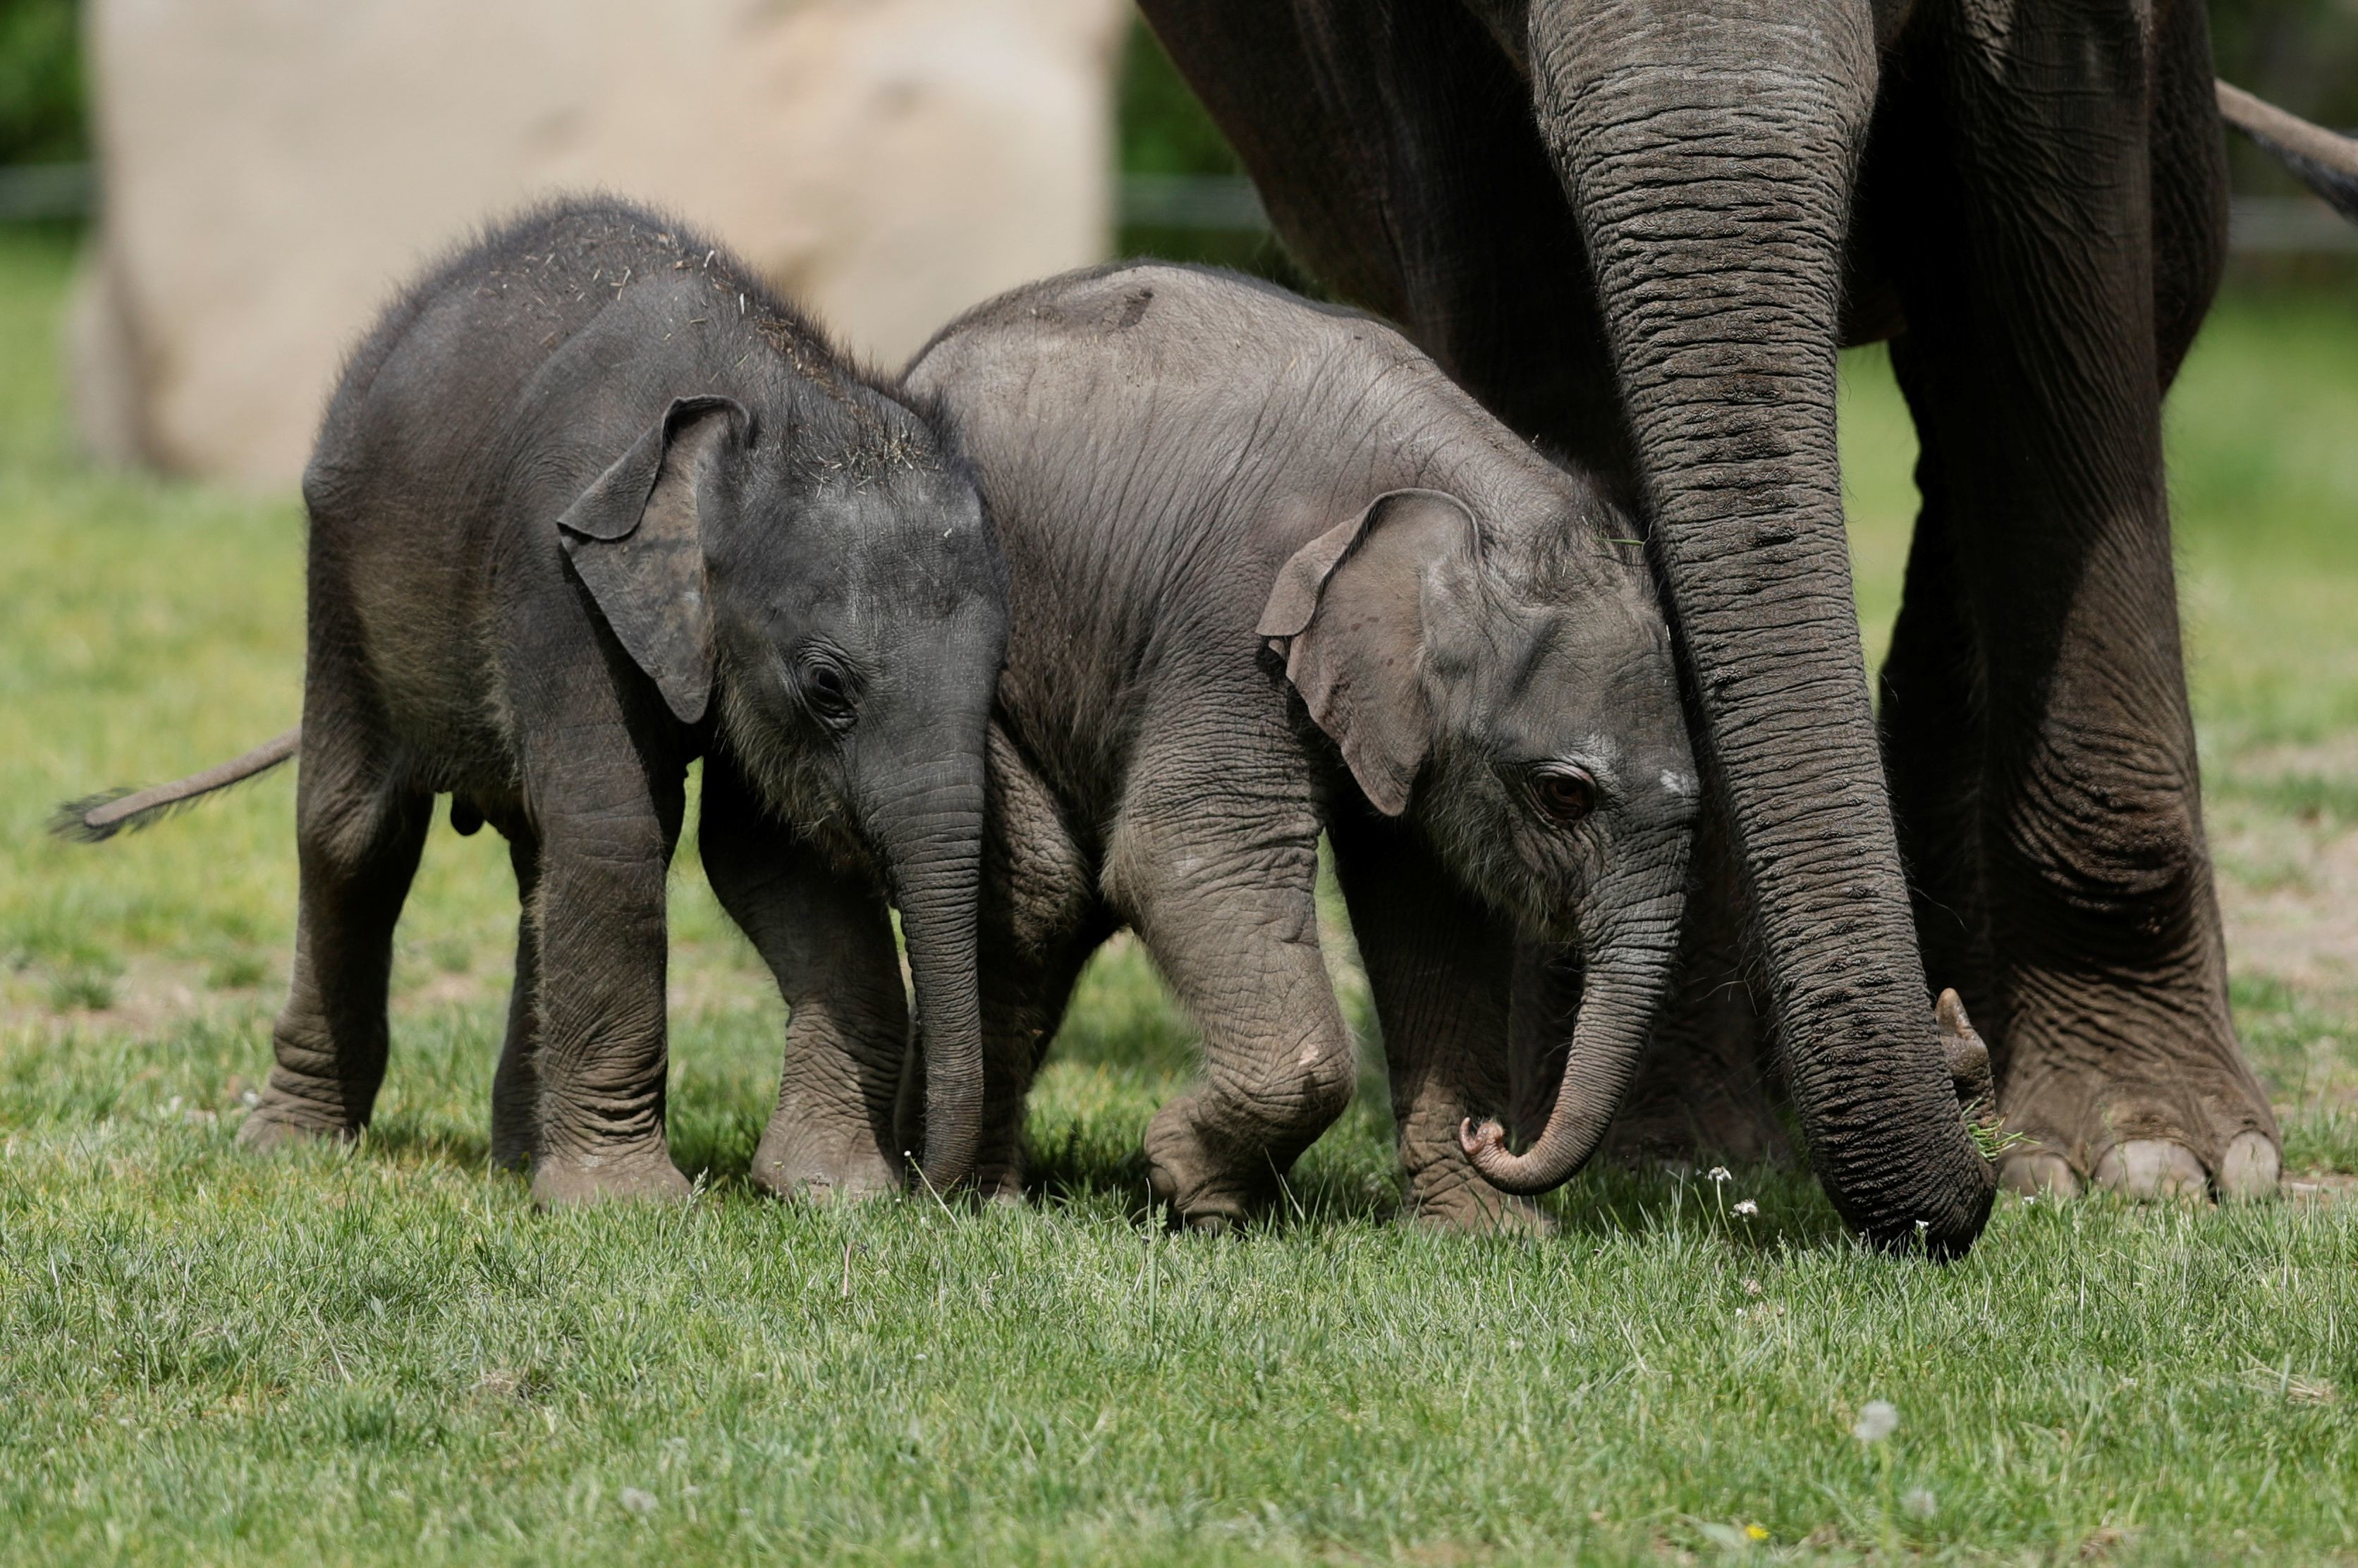 a newly born female Asian elephant calf (C) walks next to its one month-old sister